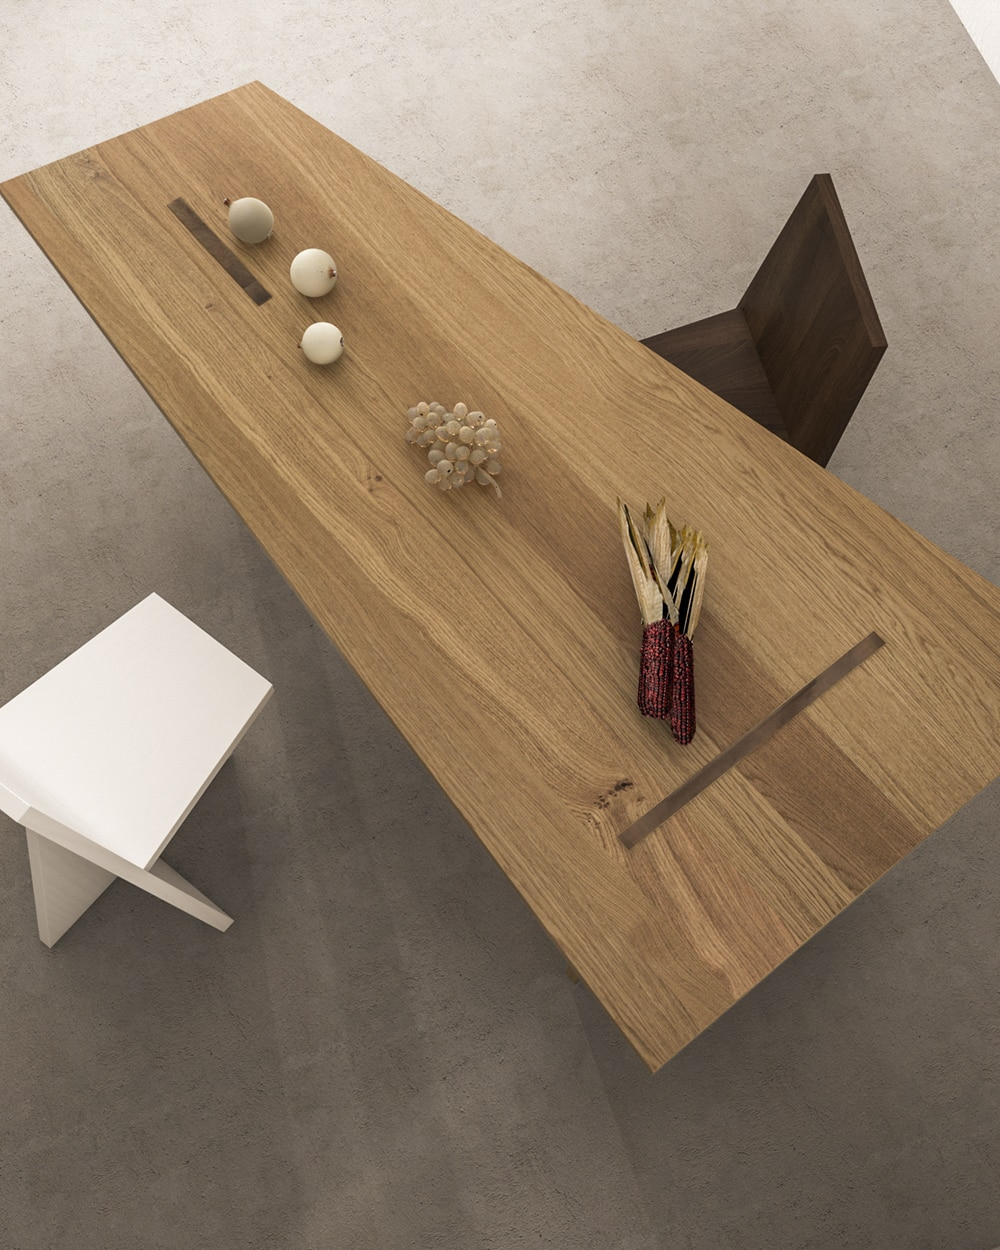 Nazara_Lazaro_Crooked_Dining_Table_2